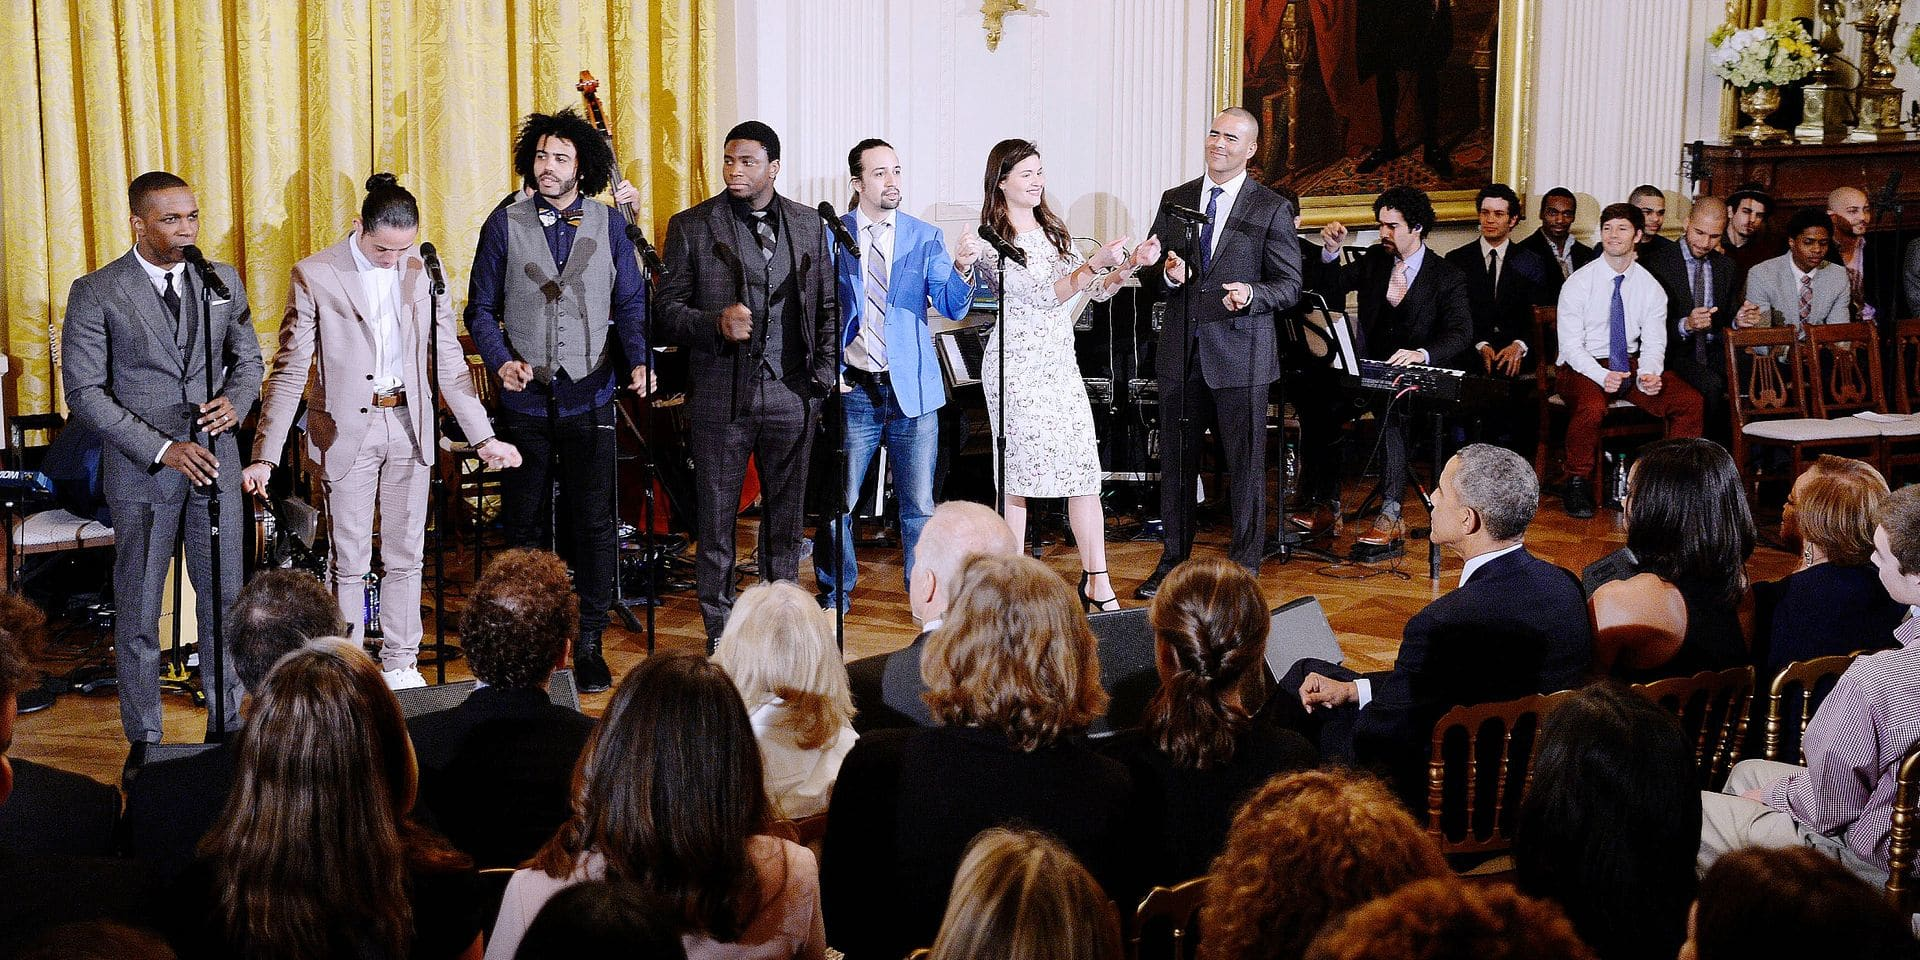 Members of the Hamilton cast perform a musical selections from the broadway show Hamilton in the East Room of the White House March 14, 2016 in Washington, D.C. Reporters / Photoshot